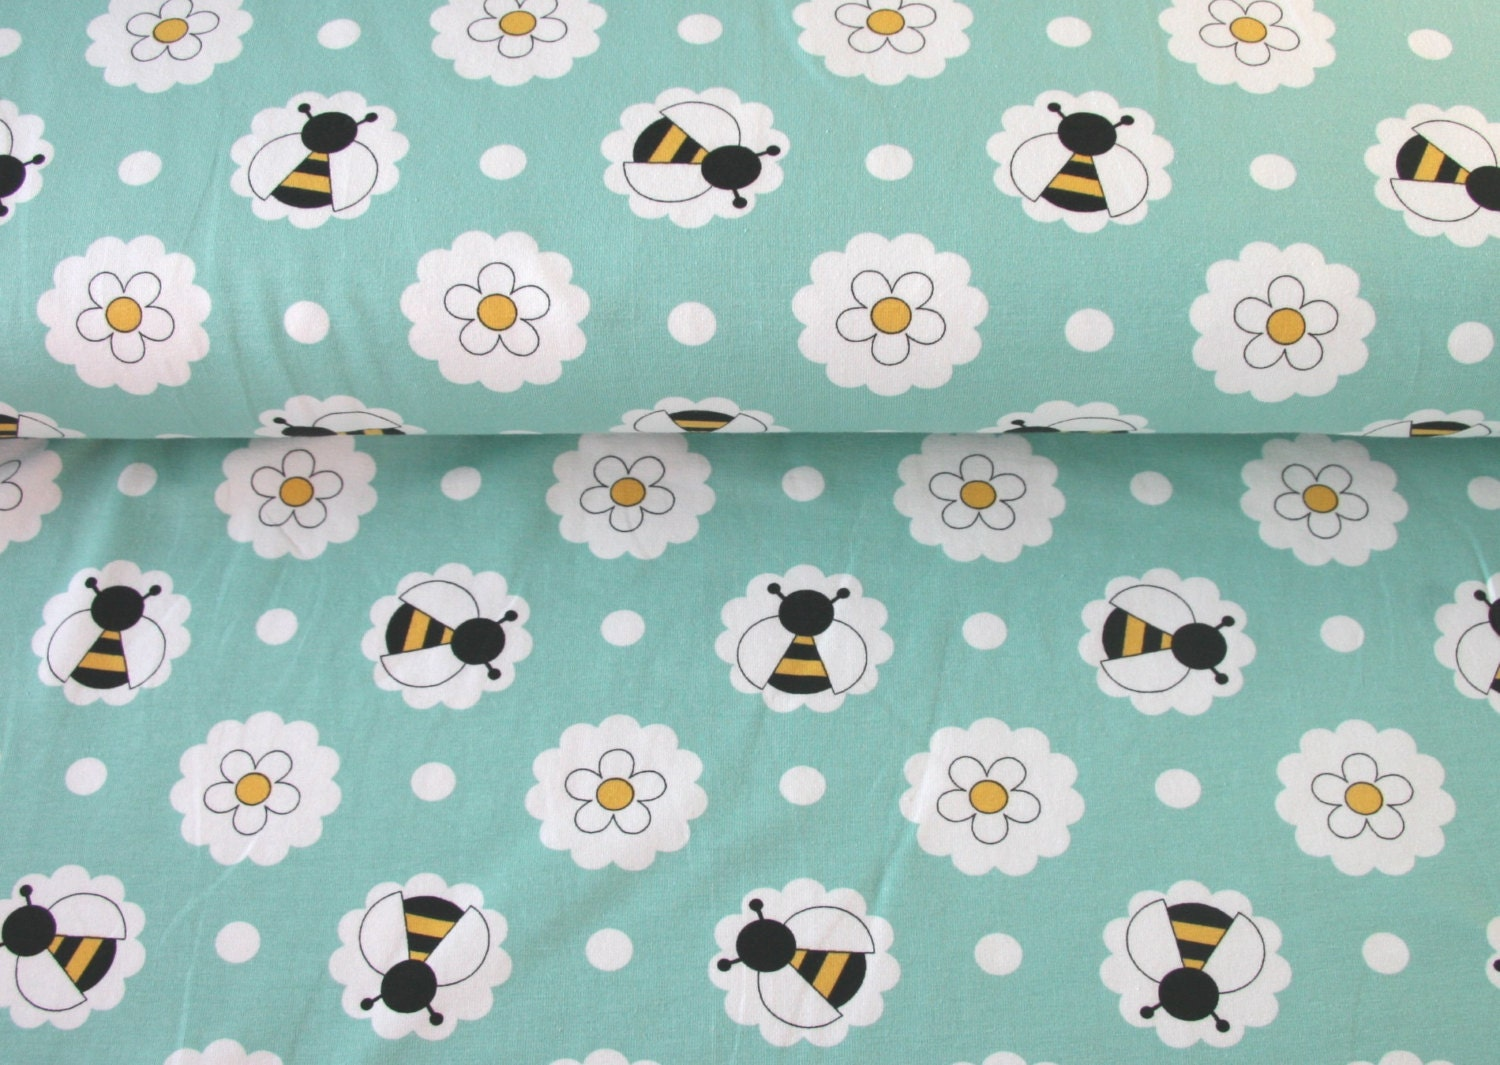 Flowers and bees jersery children 39 s fabric children 39 s for Children s jersey fabric